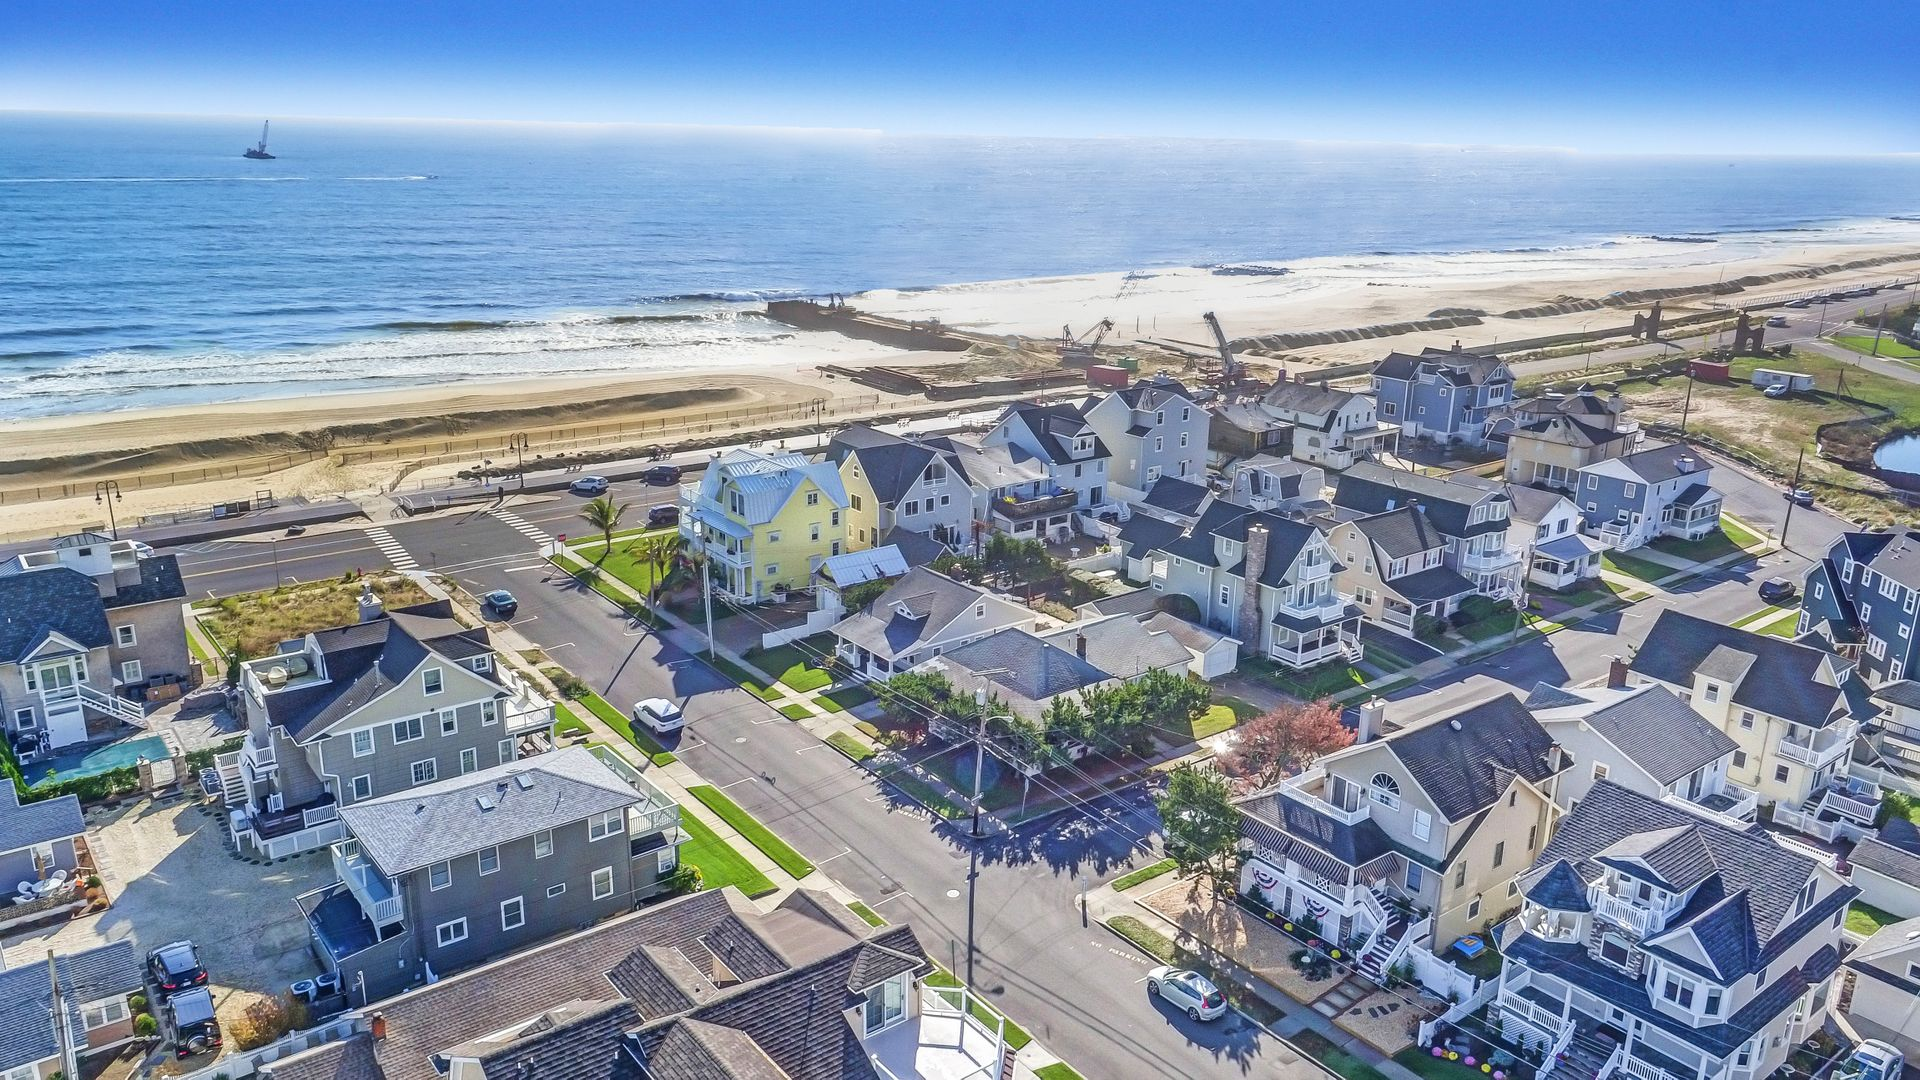 Single Family Home for Sale at Located Near Ocean, Beach, Boardwalk 103 20th Ave Belmar, New Jersey 07719 United States